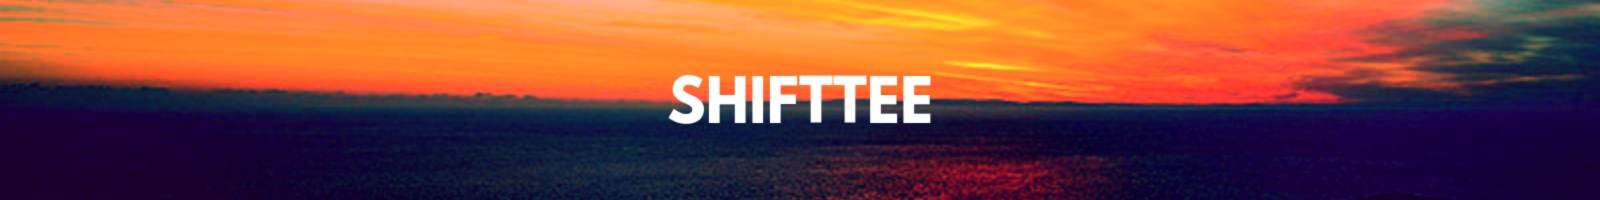 Showroom - ShiftTee